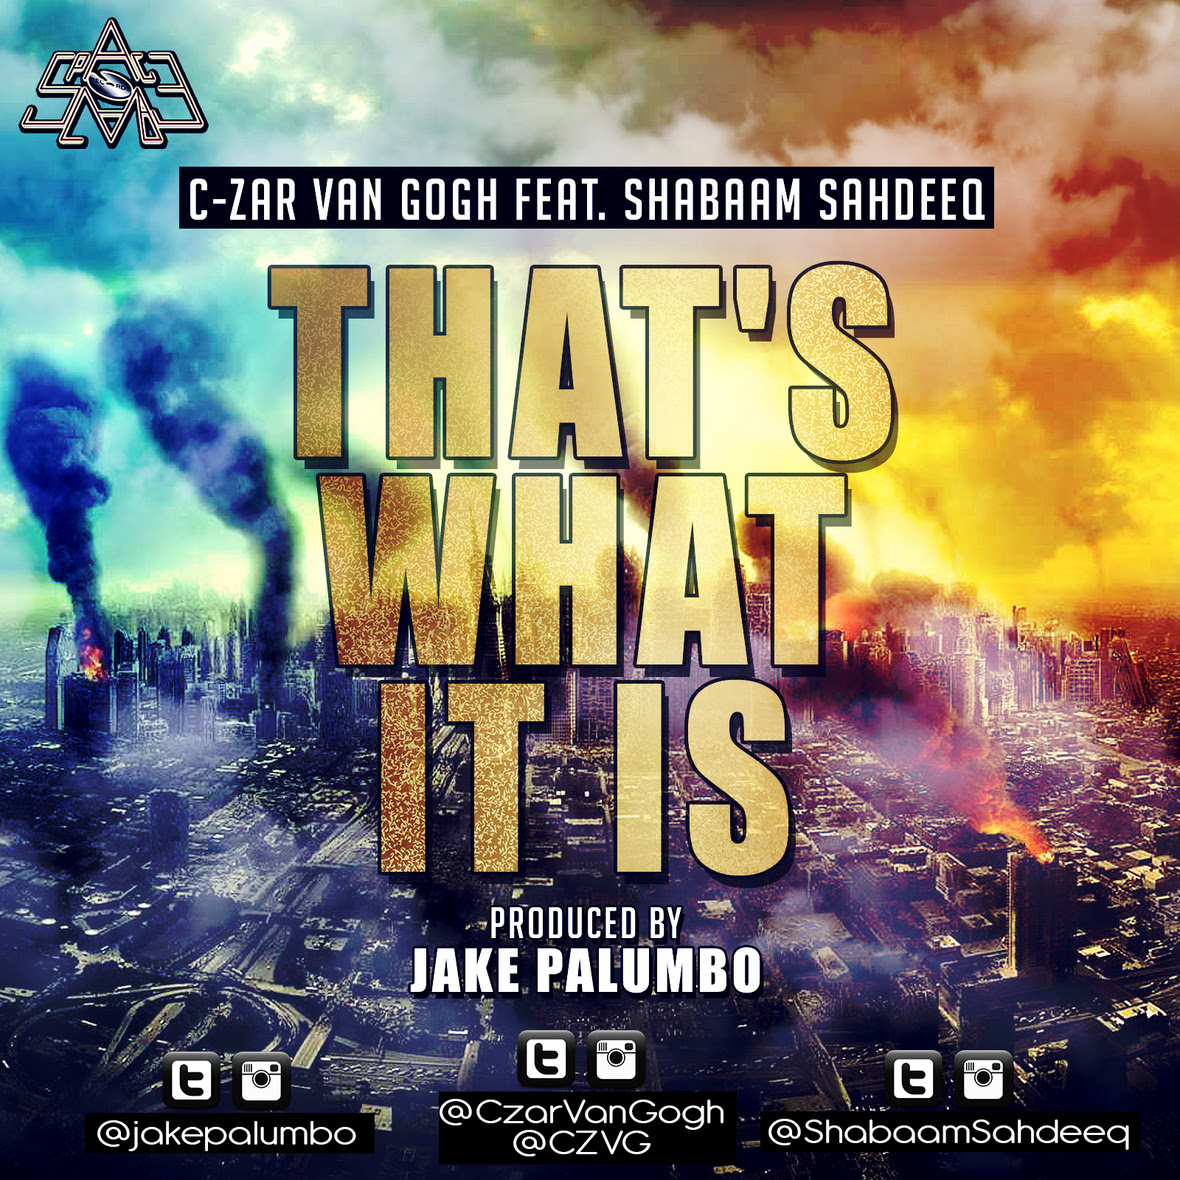 C-Zar Van Gogh ft. Shabaam Sahdeeq - That's What It Is (Prod. by Jake Palumbo)